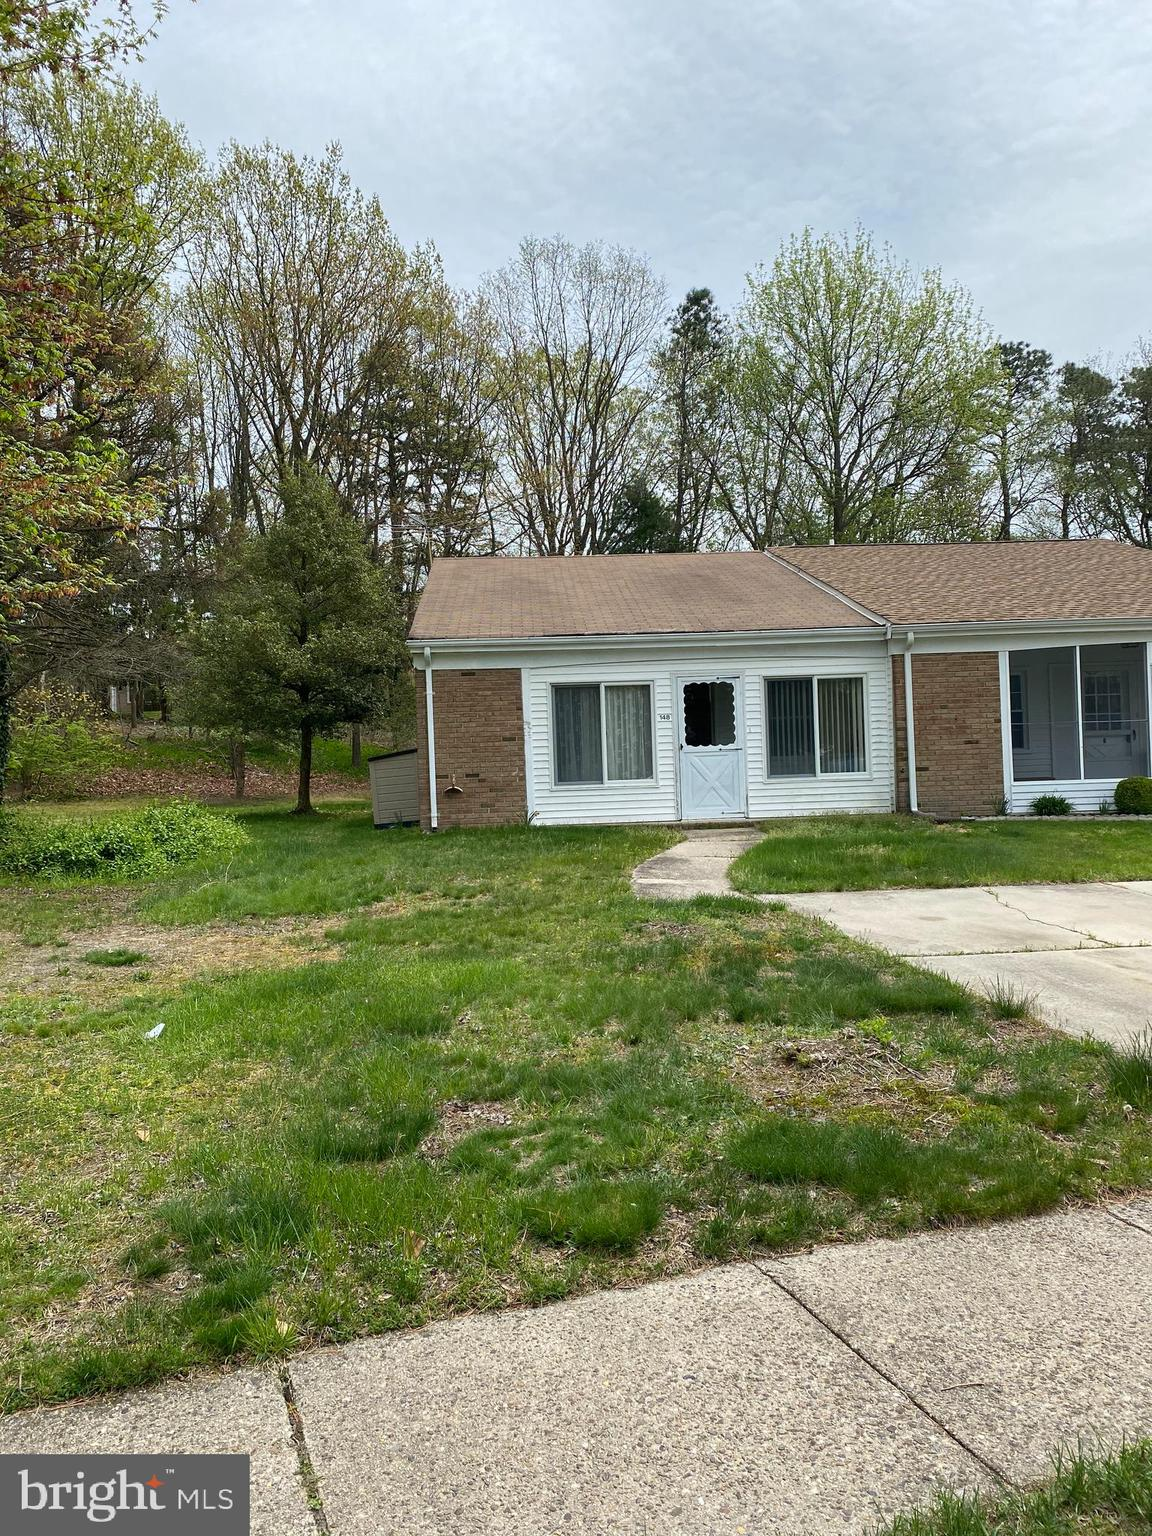 Berwyn - End Unit  Being Sold in AS IS Condition - Home Inspection is for Buyers Information Purposes Only Newer Double Pane Windows and Patio Door. Enclosed front porch On an eyebrow that Backs to Woods Why Rent when you can buy this Unit. Won't last long schedule your appointment today.